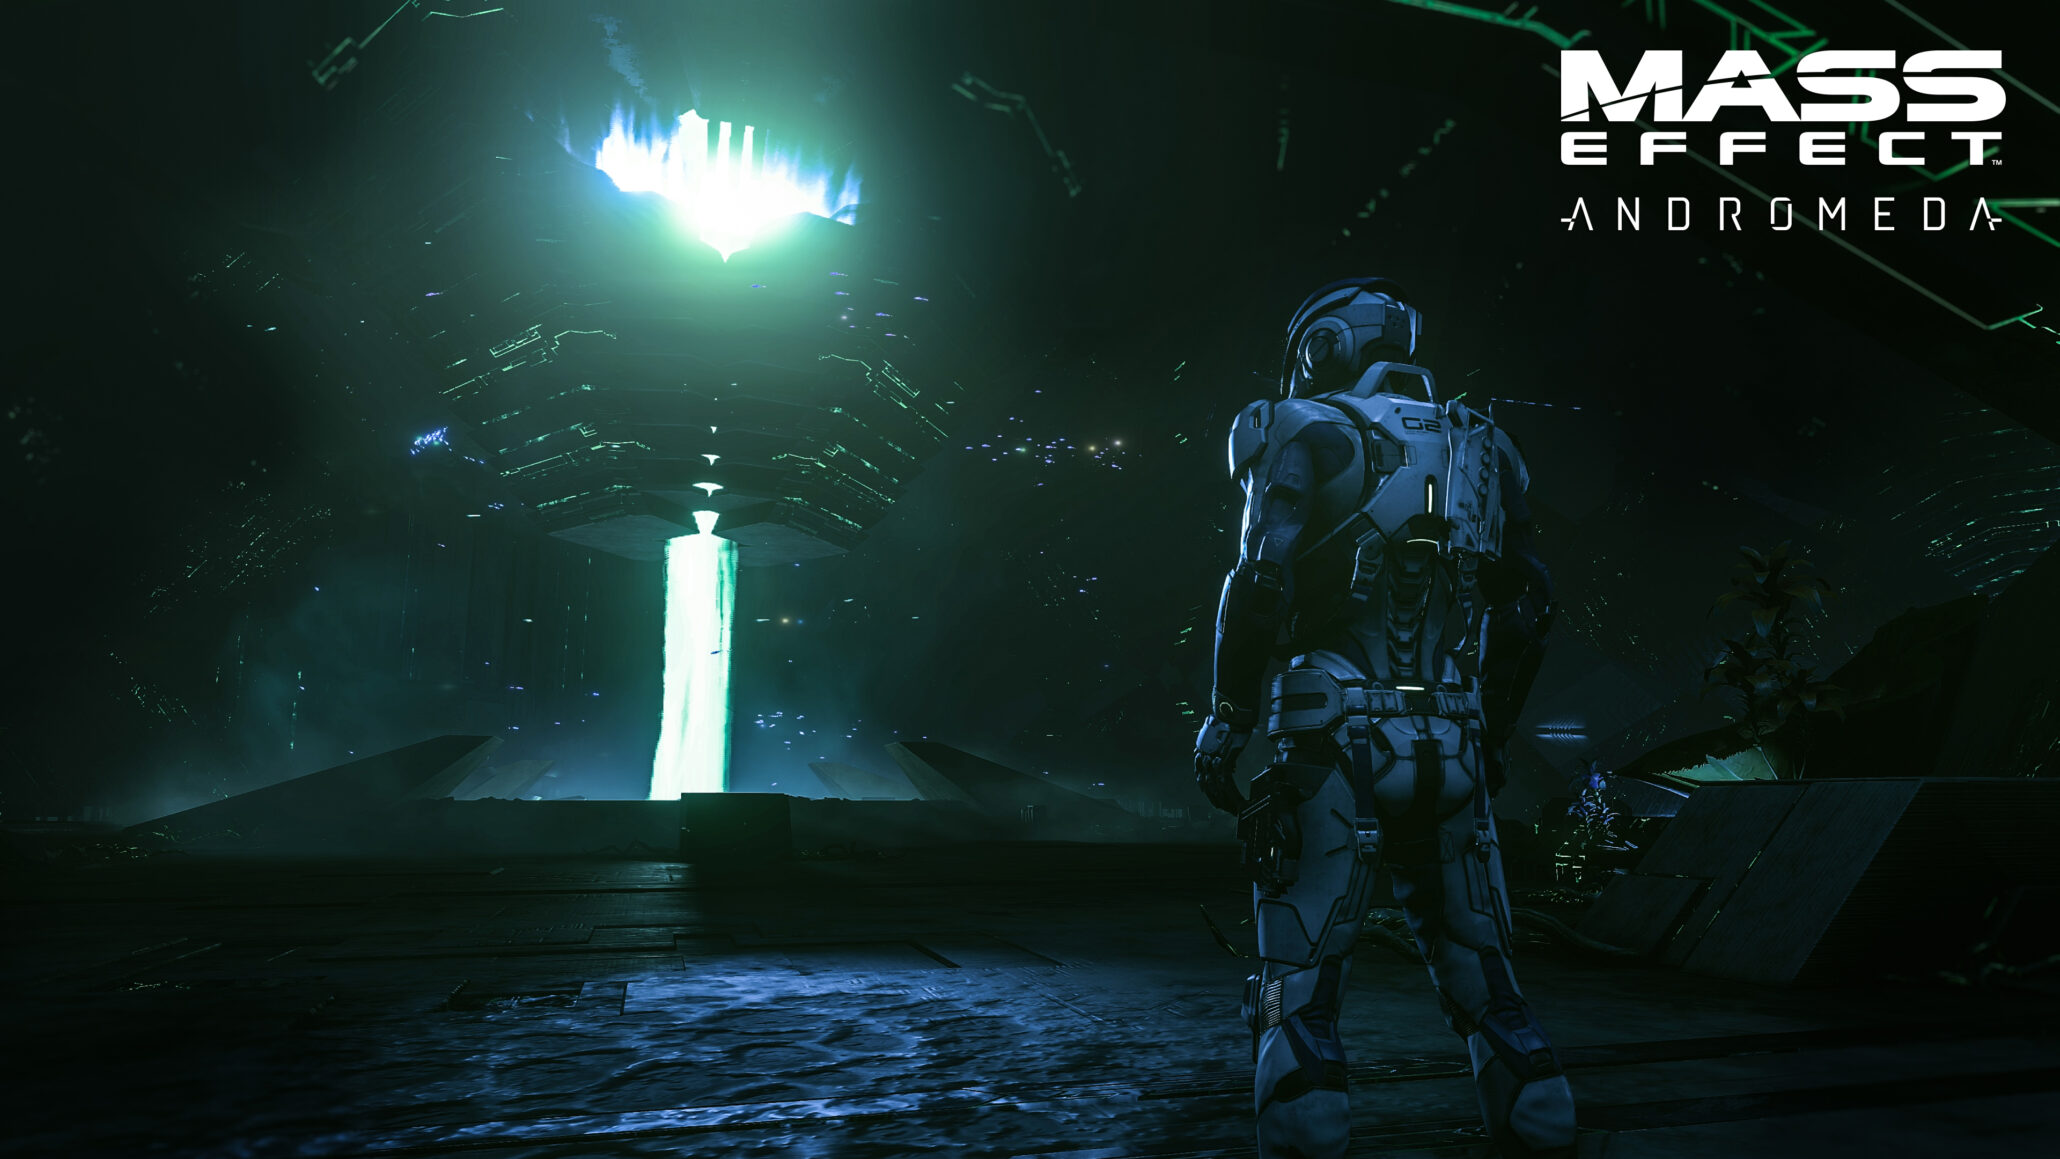 Mass Effect Andromeda New Initiative Video Showcases Tempest And Nomad